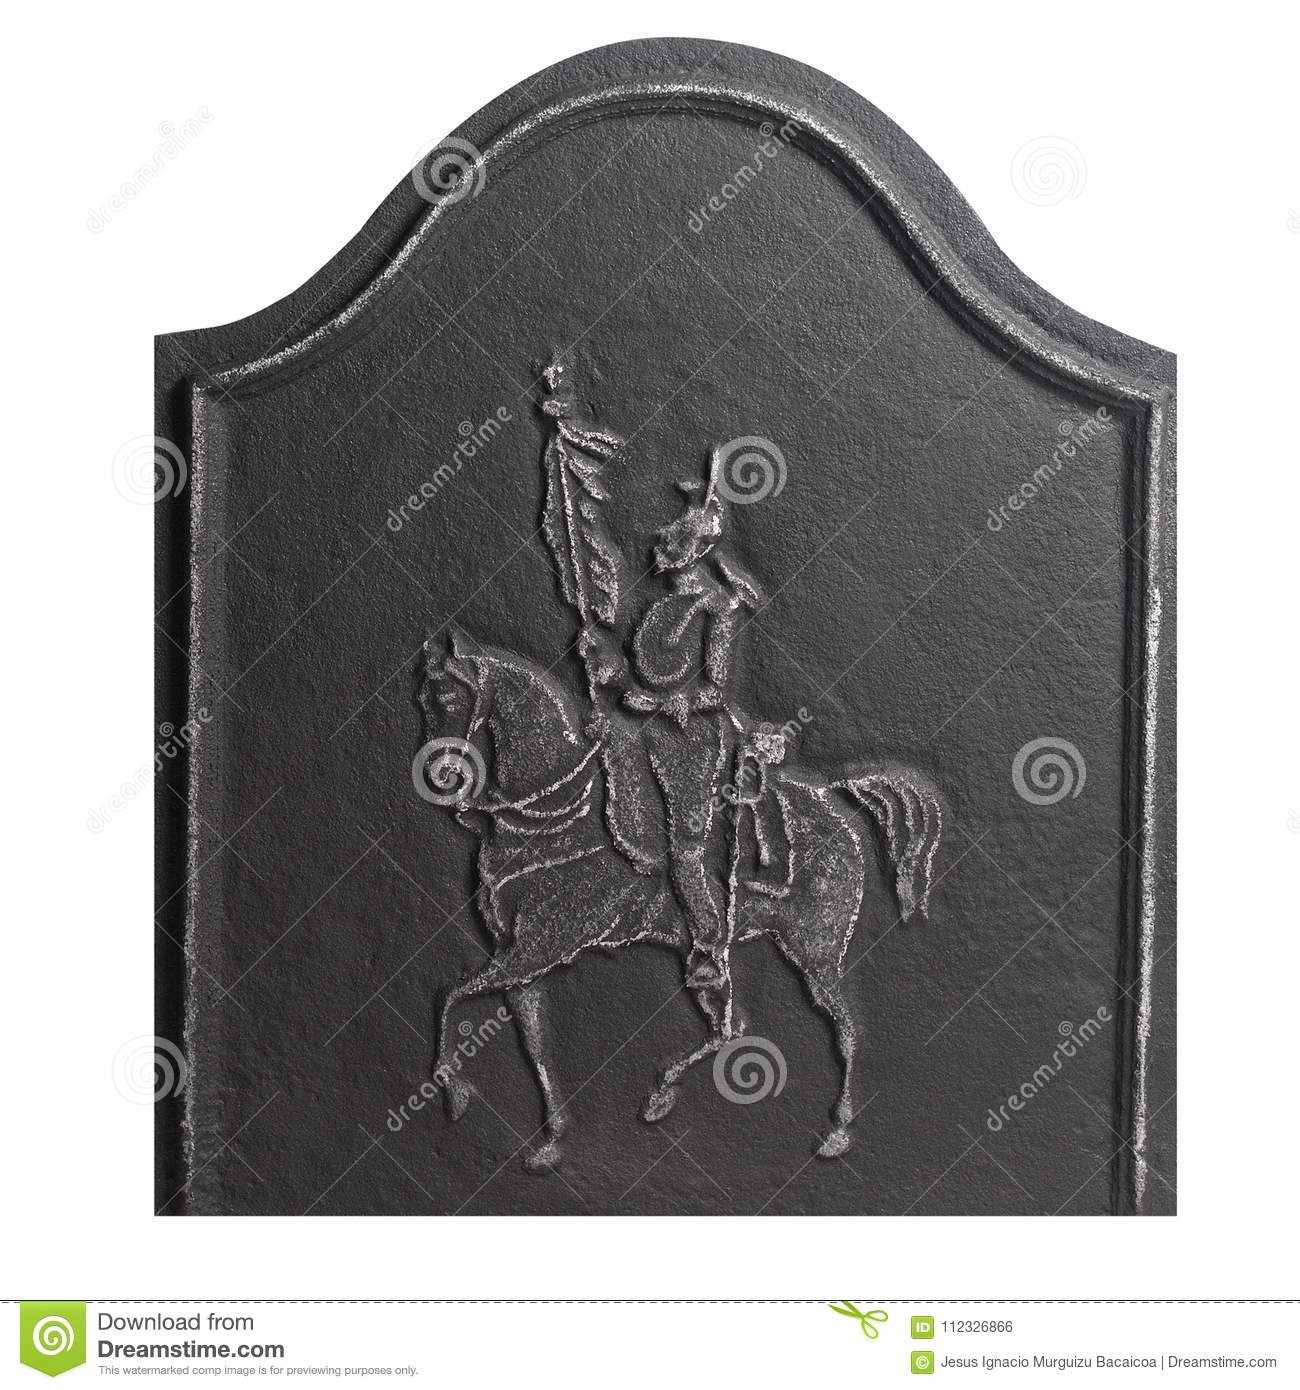 Low Cast Iron Fire Plate With Knight Image Stock Photo - Image of